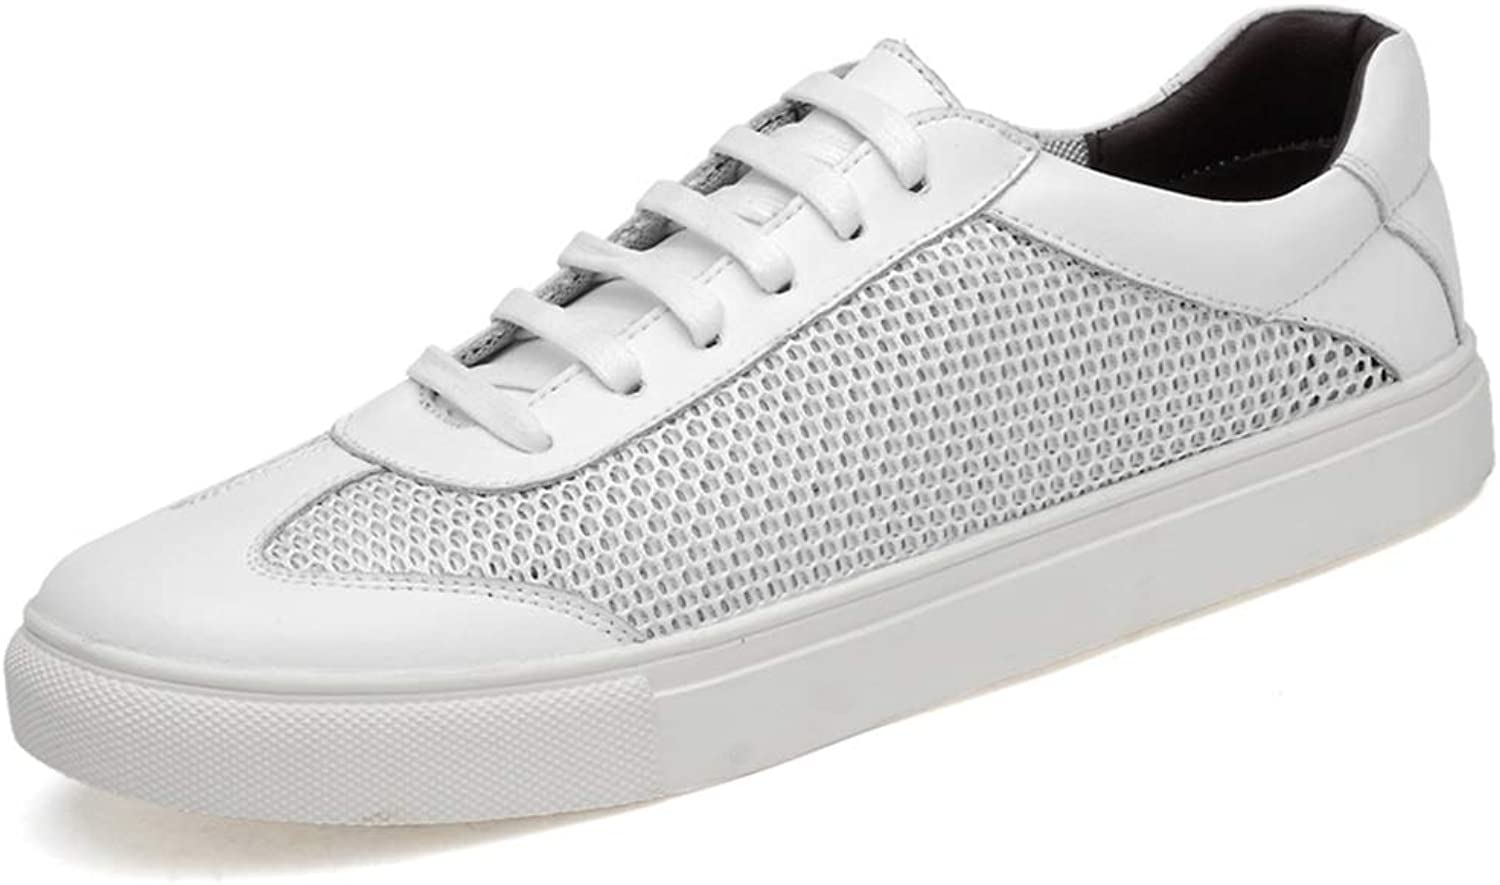 Athletic Sneakers for Men Perforated Mesh Fabric Genuine Leather shoes Running Skating Fitting Cricket shoes